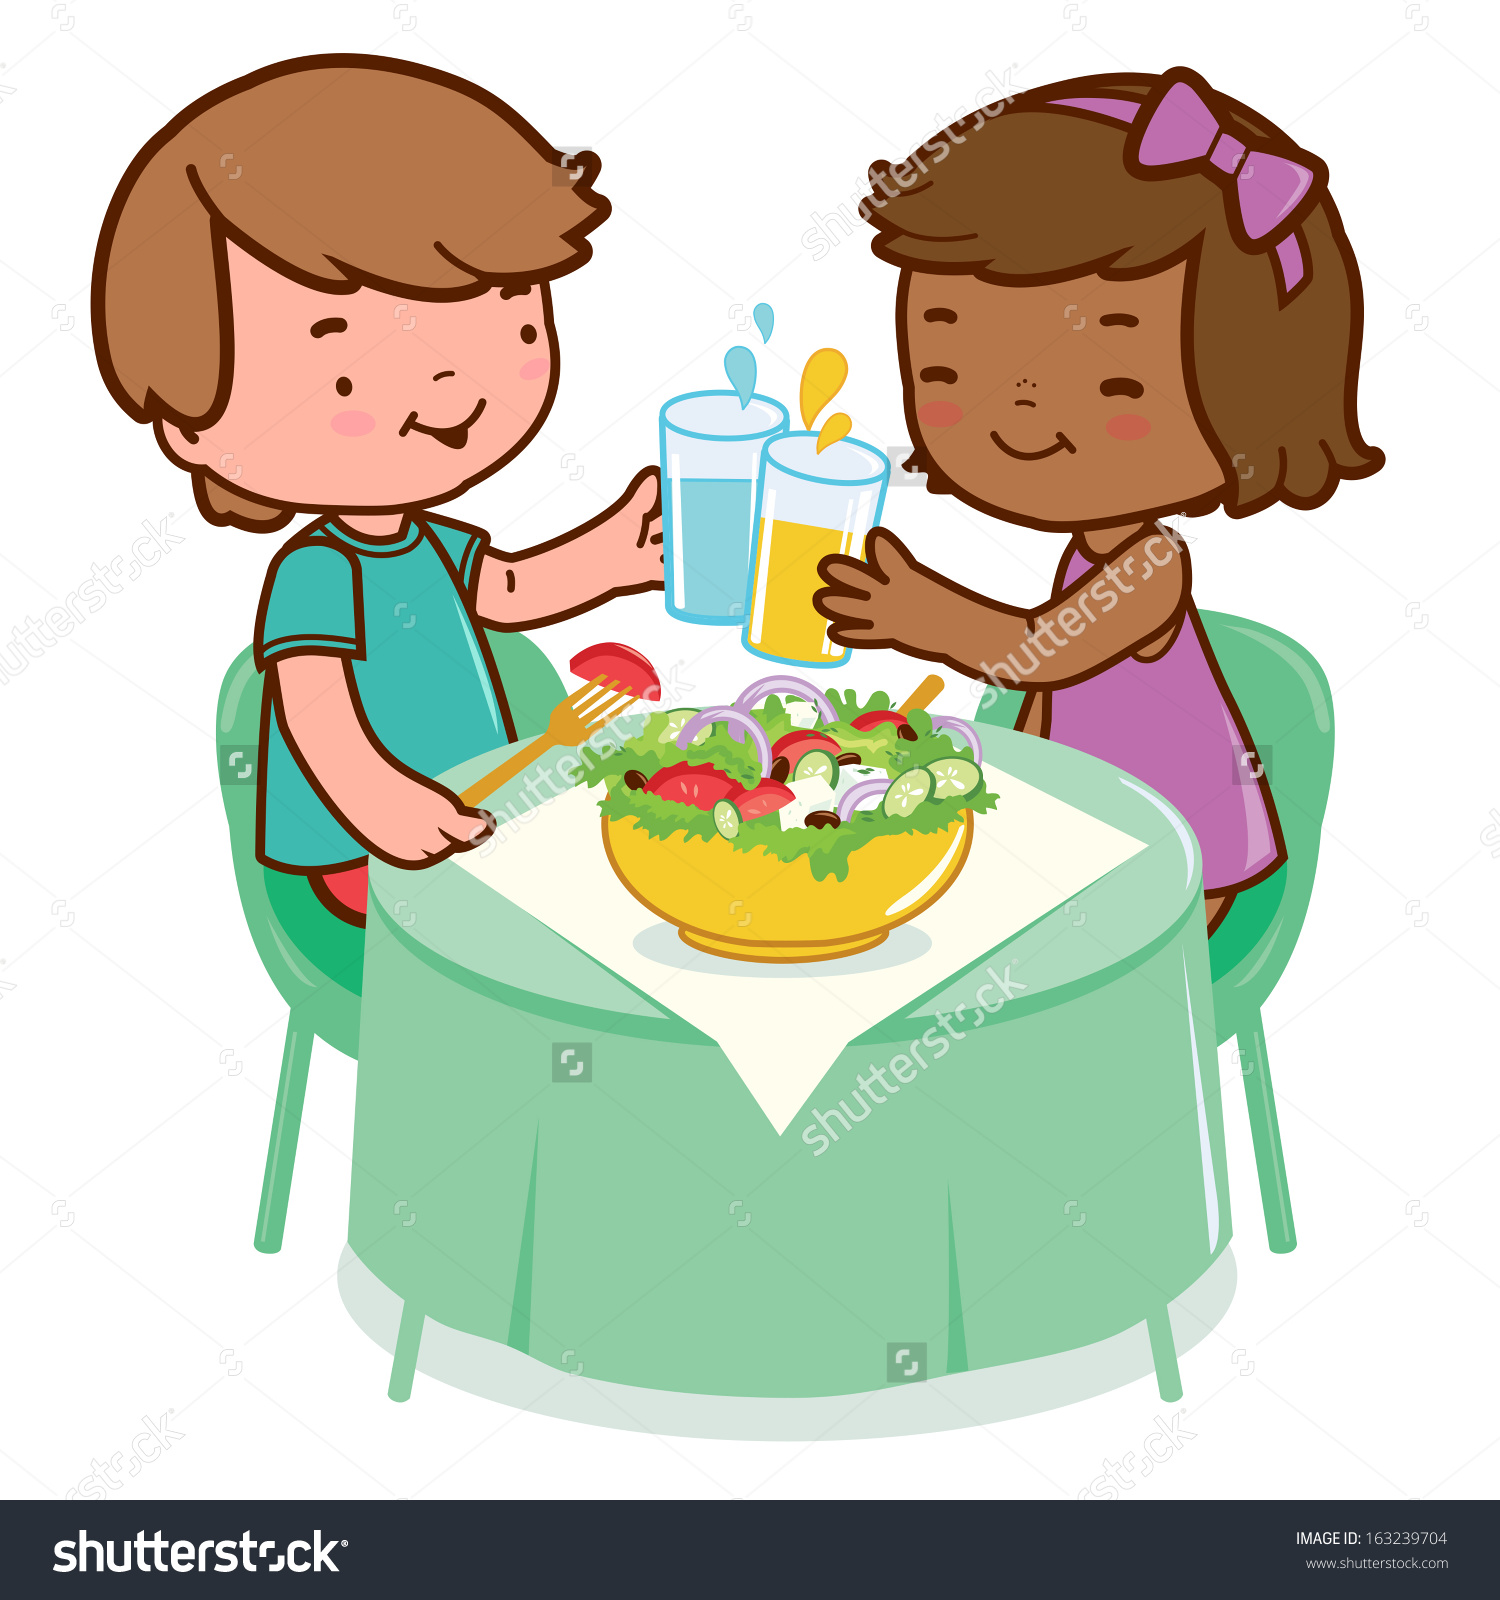 Kids at water table clipart.